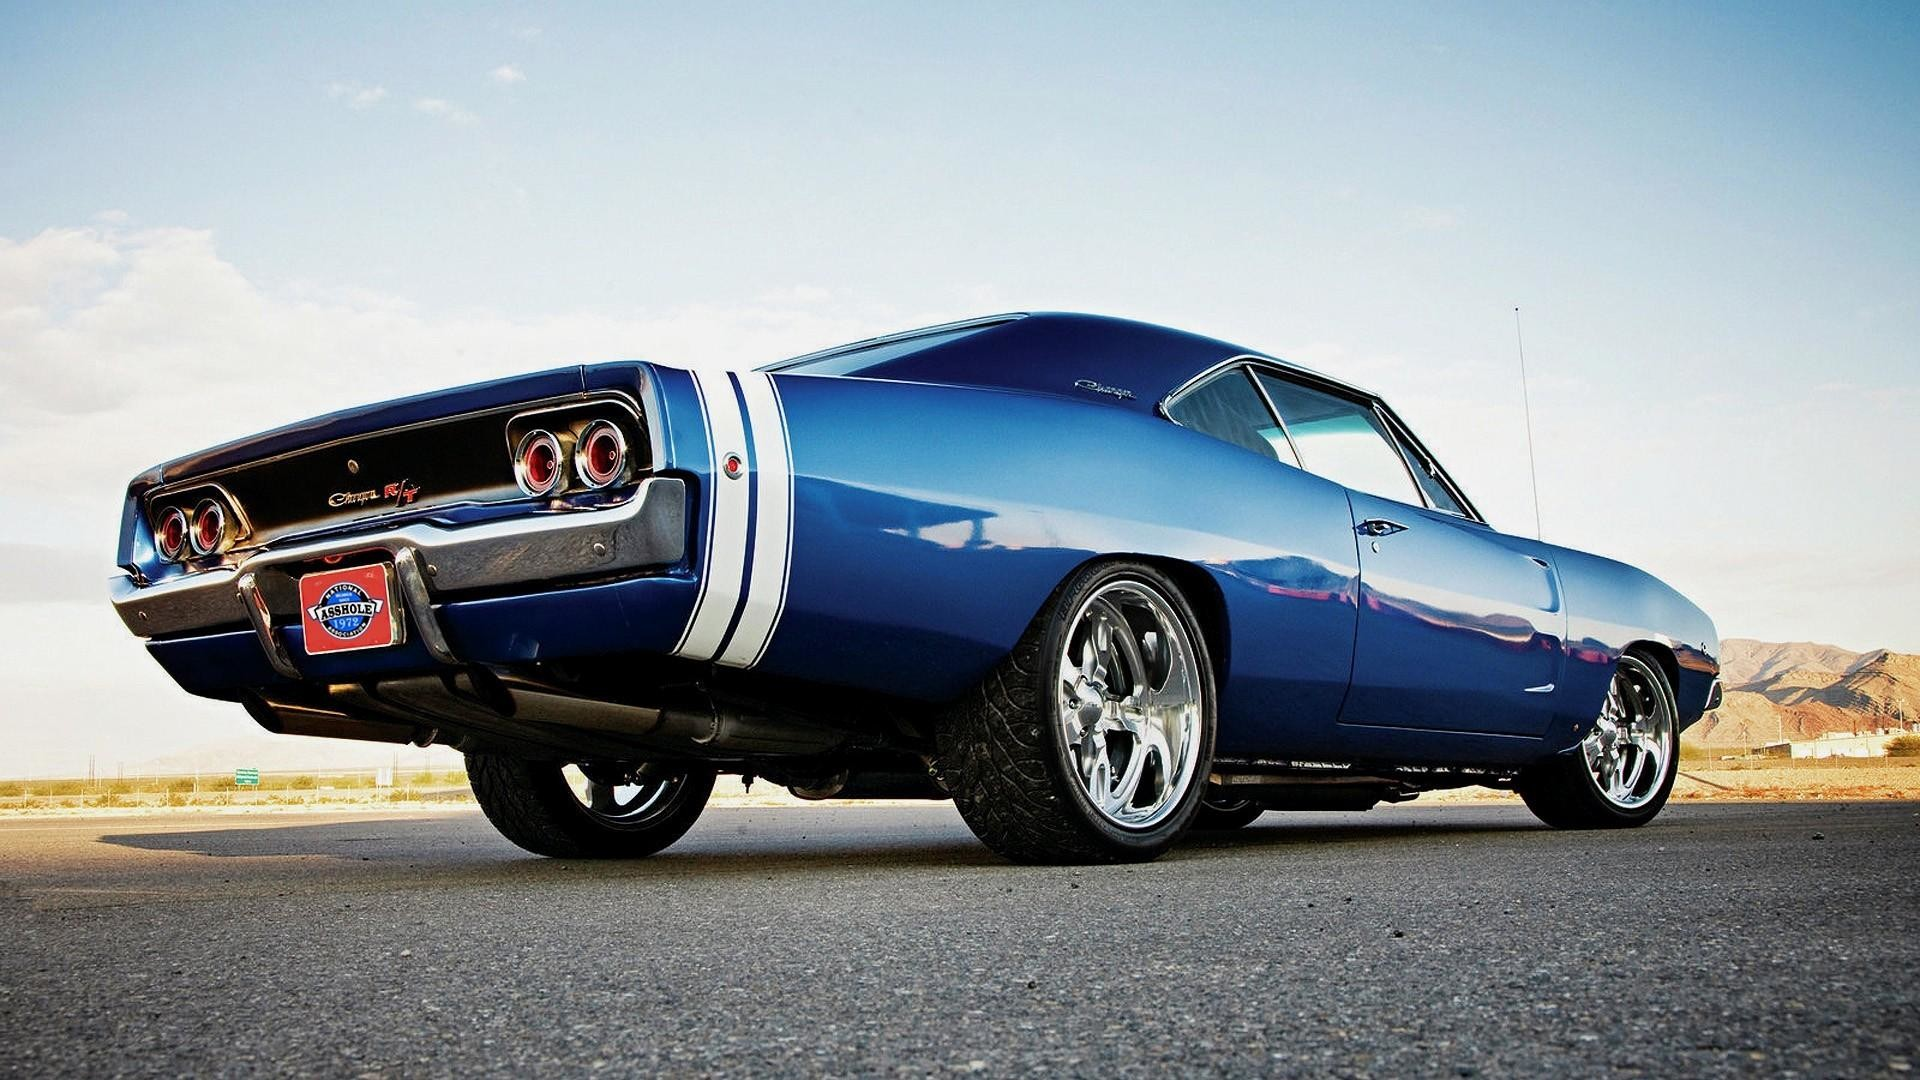 wallpaper.wiki-Blue-1970-Dodge-Charger-Background-Free-